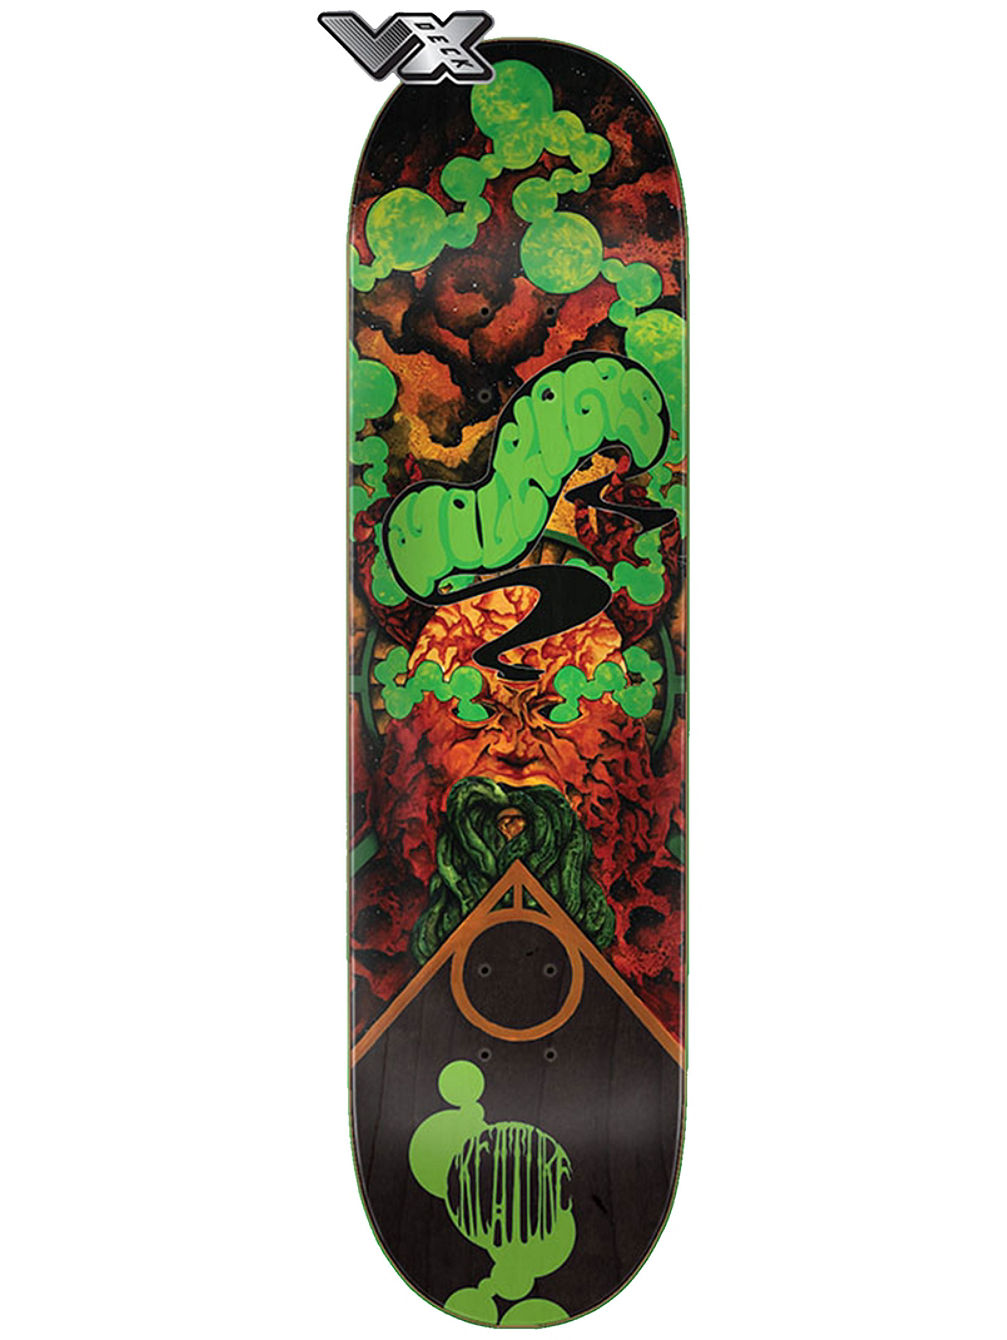 "Wilkins Infinite VX 8.8"" Skateboard Deck"